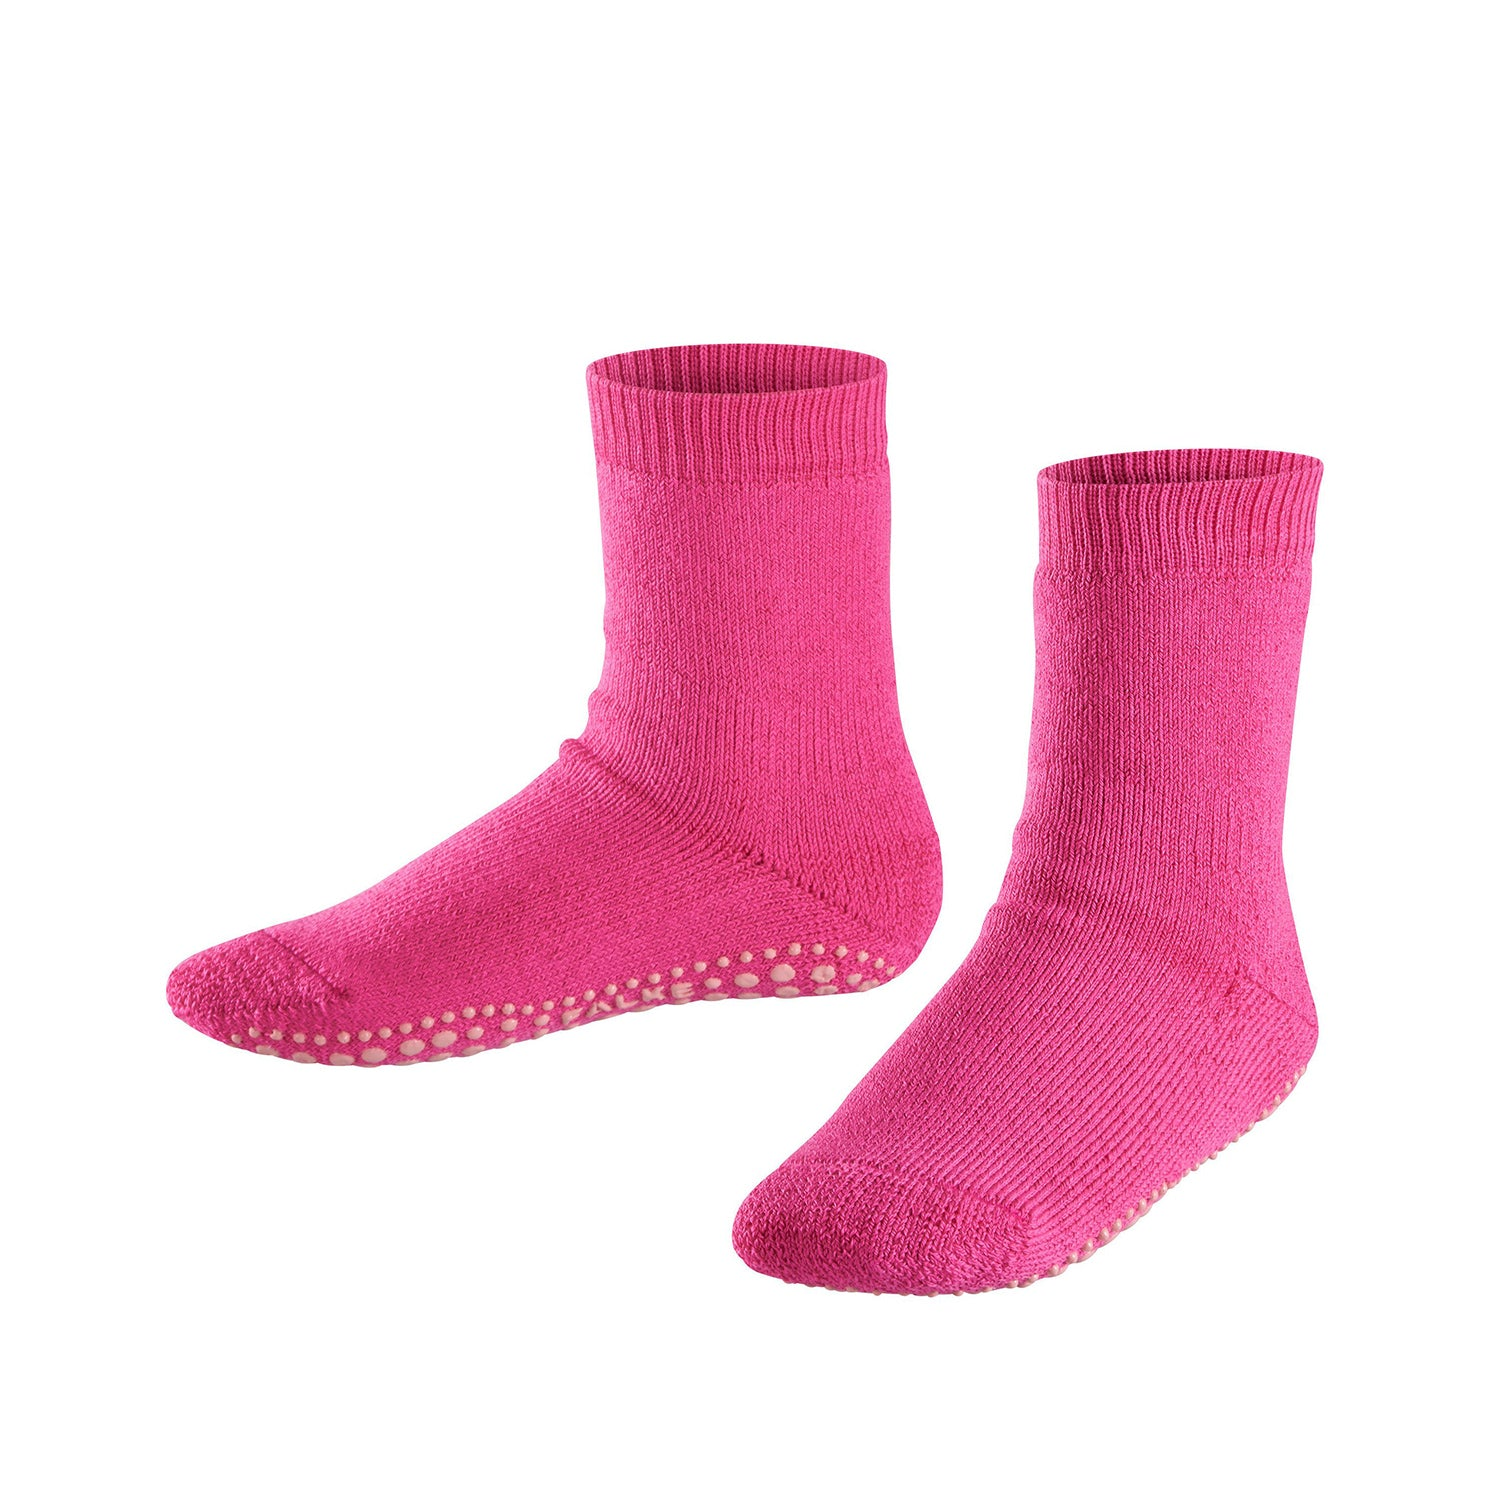 Falke Kids Catspads Slipper Socks - Gloss